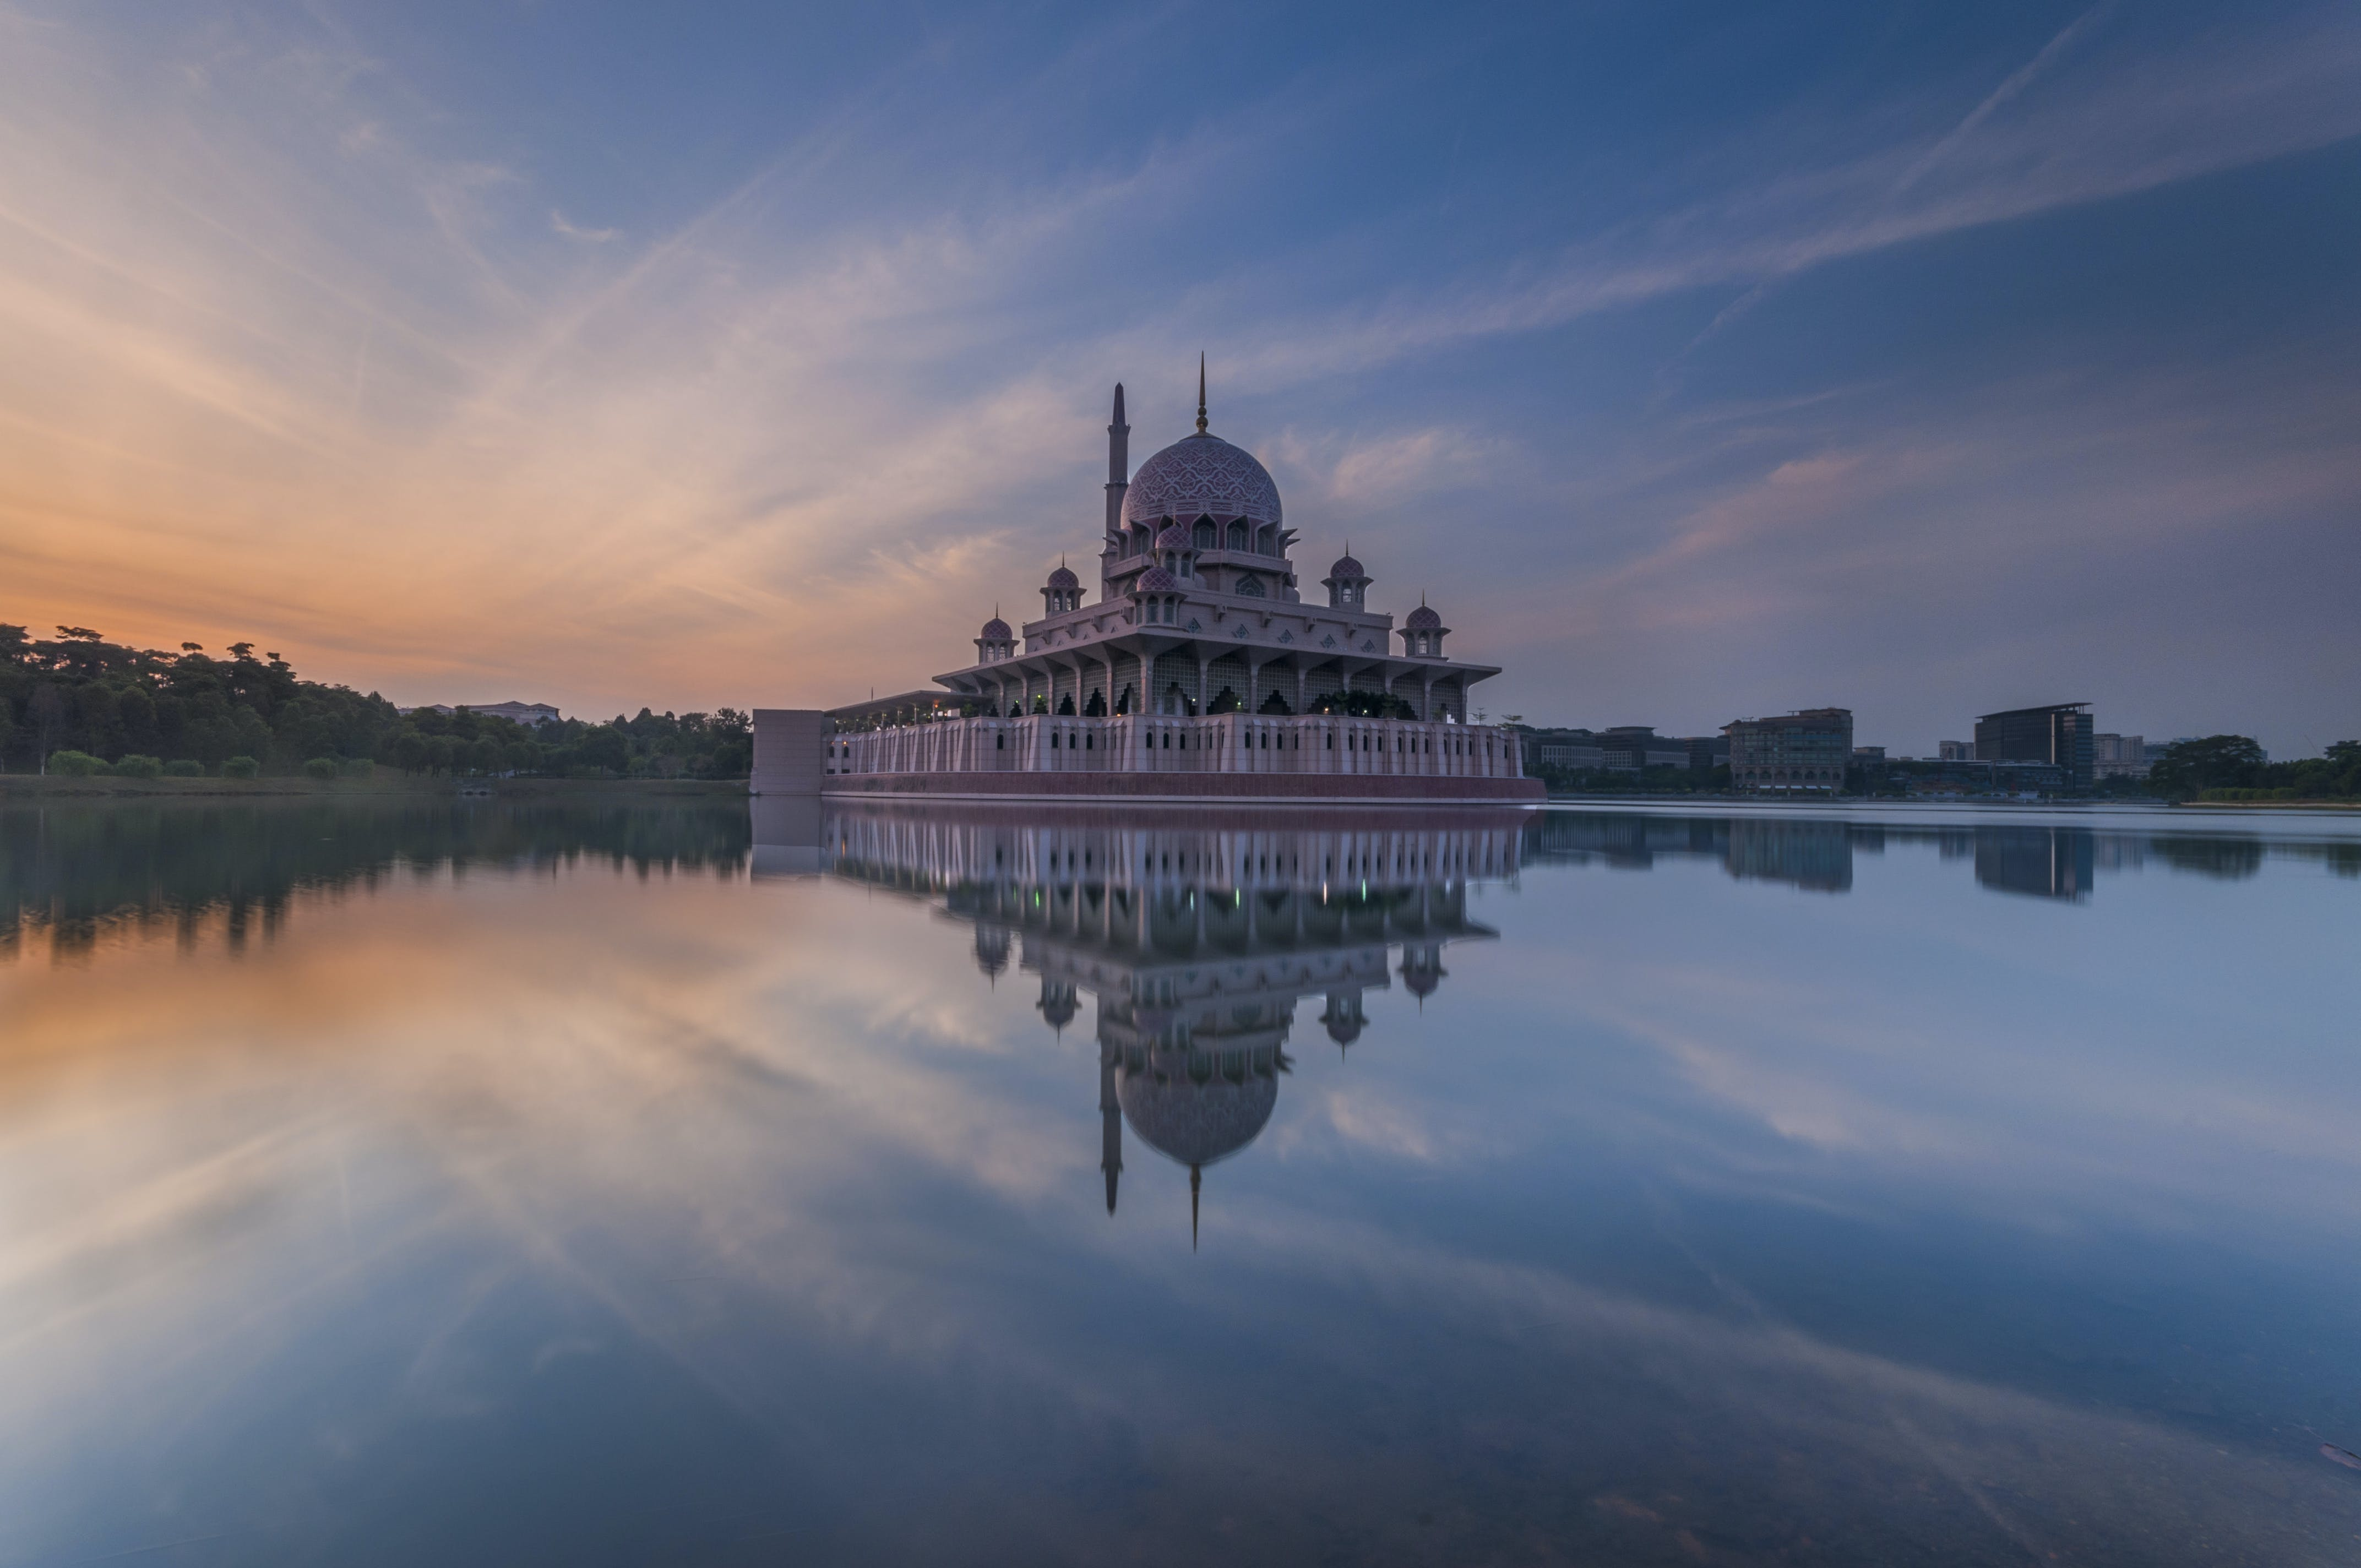 White Dome Building Reflected on Water